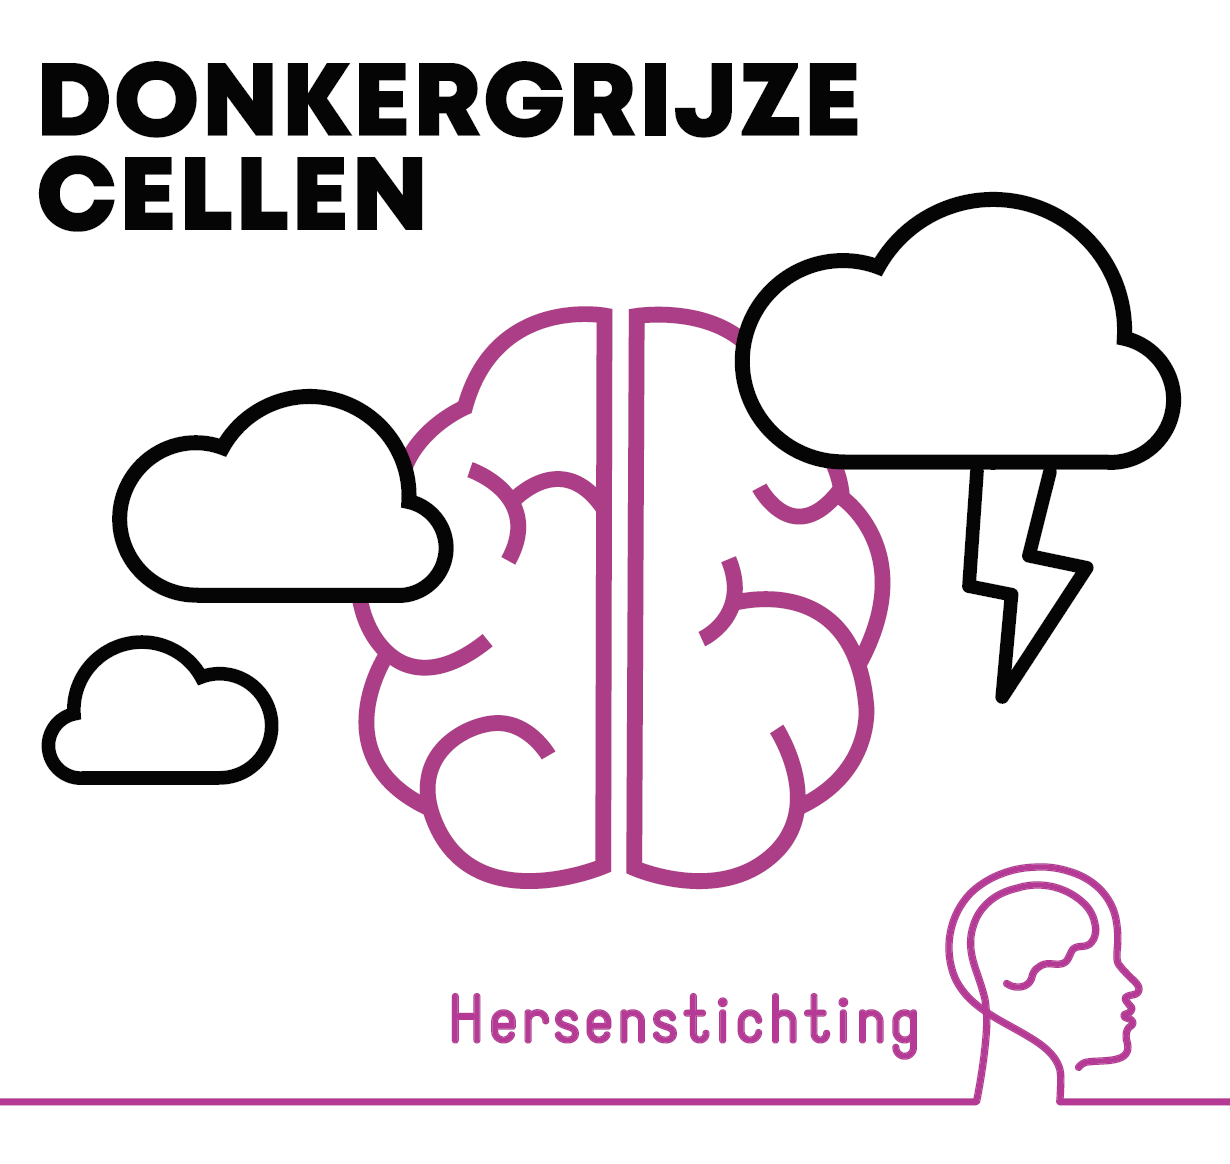 Podcast van de Hersenstichting